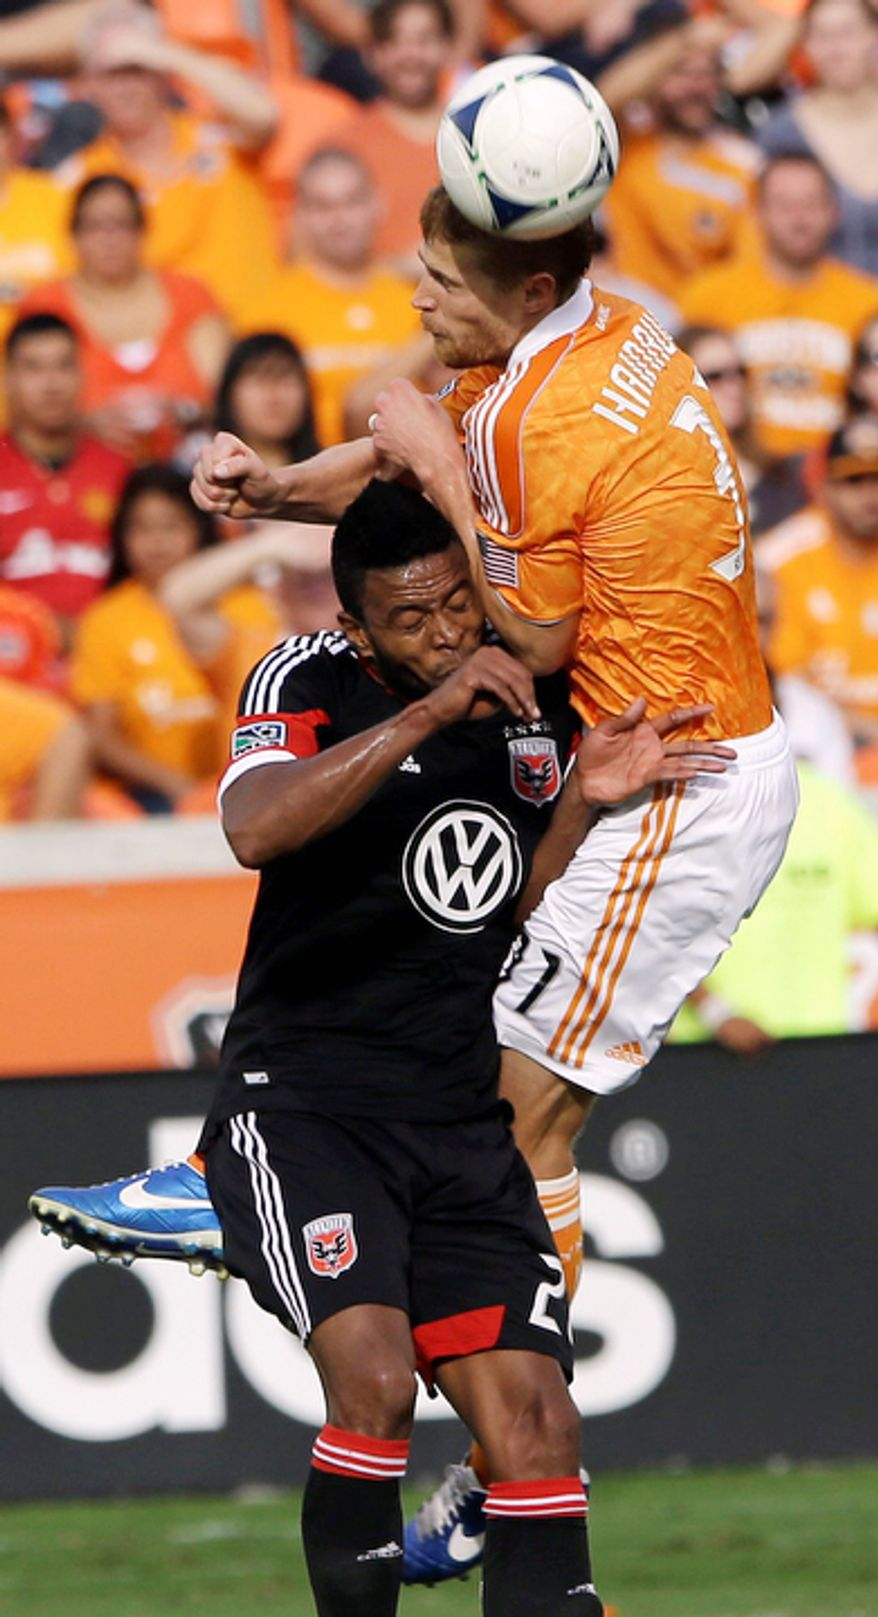 D.C. United's Lionard Pajoy, left, collides with Houston Dynamo's Andre Hainault (31) during the first half of an MLS Eastern Conference Championship soccer game, Sunday, Nov. 11, 2012, in Houston. (AP Photo/David J. Phillip)